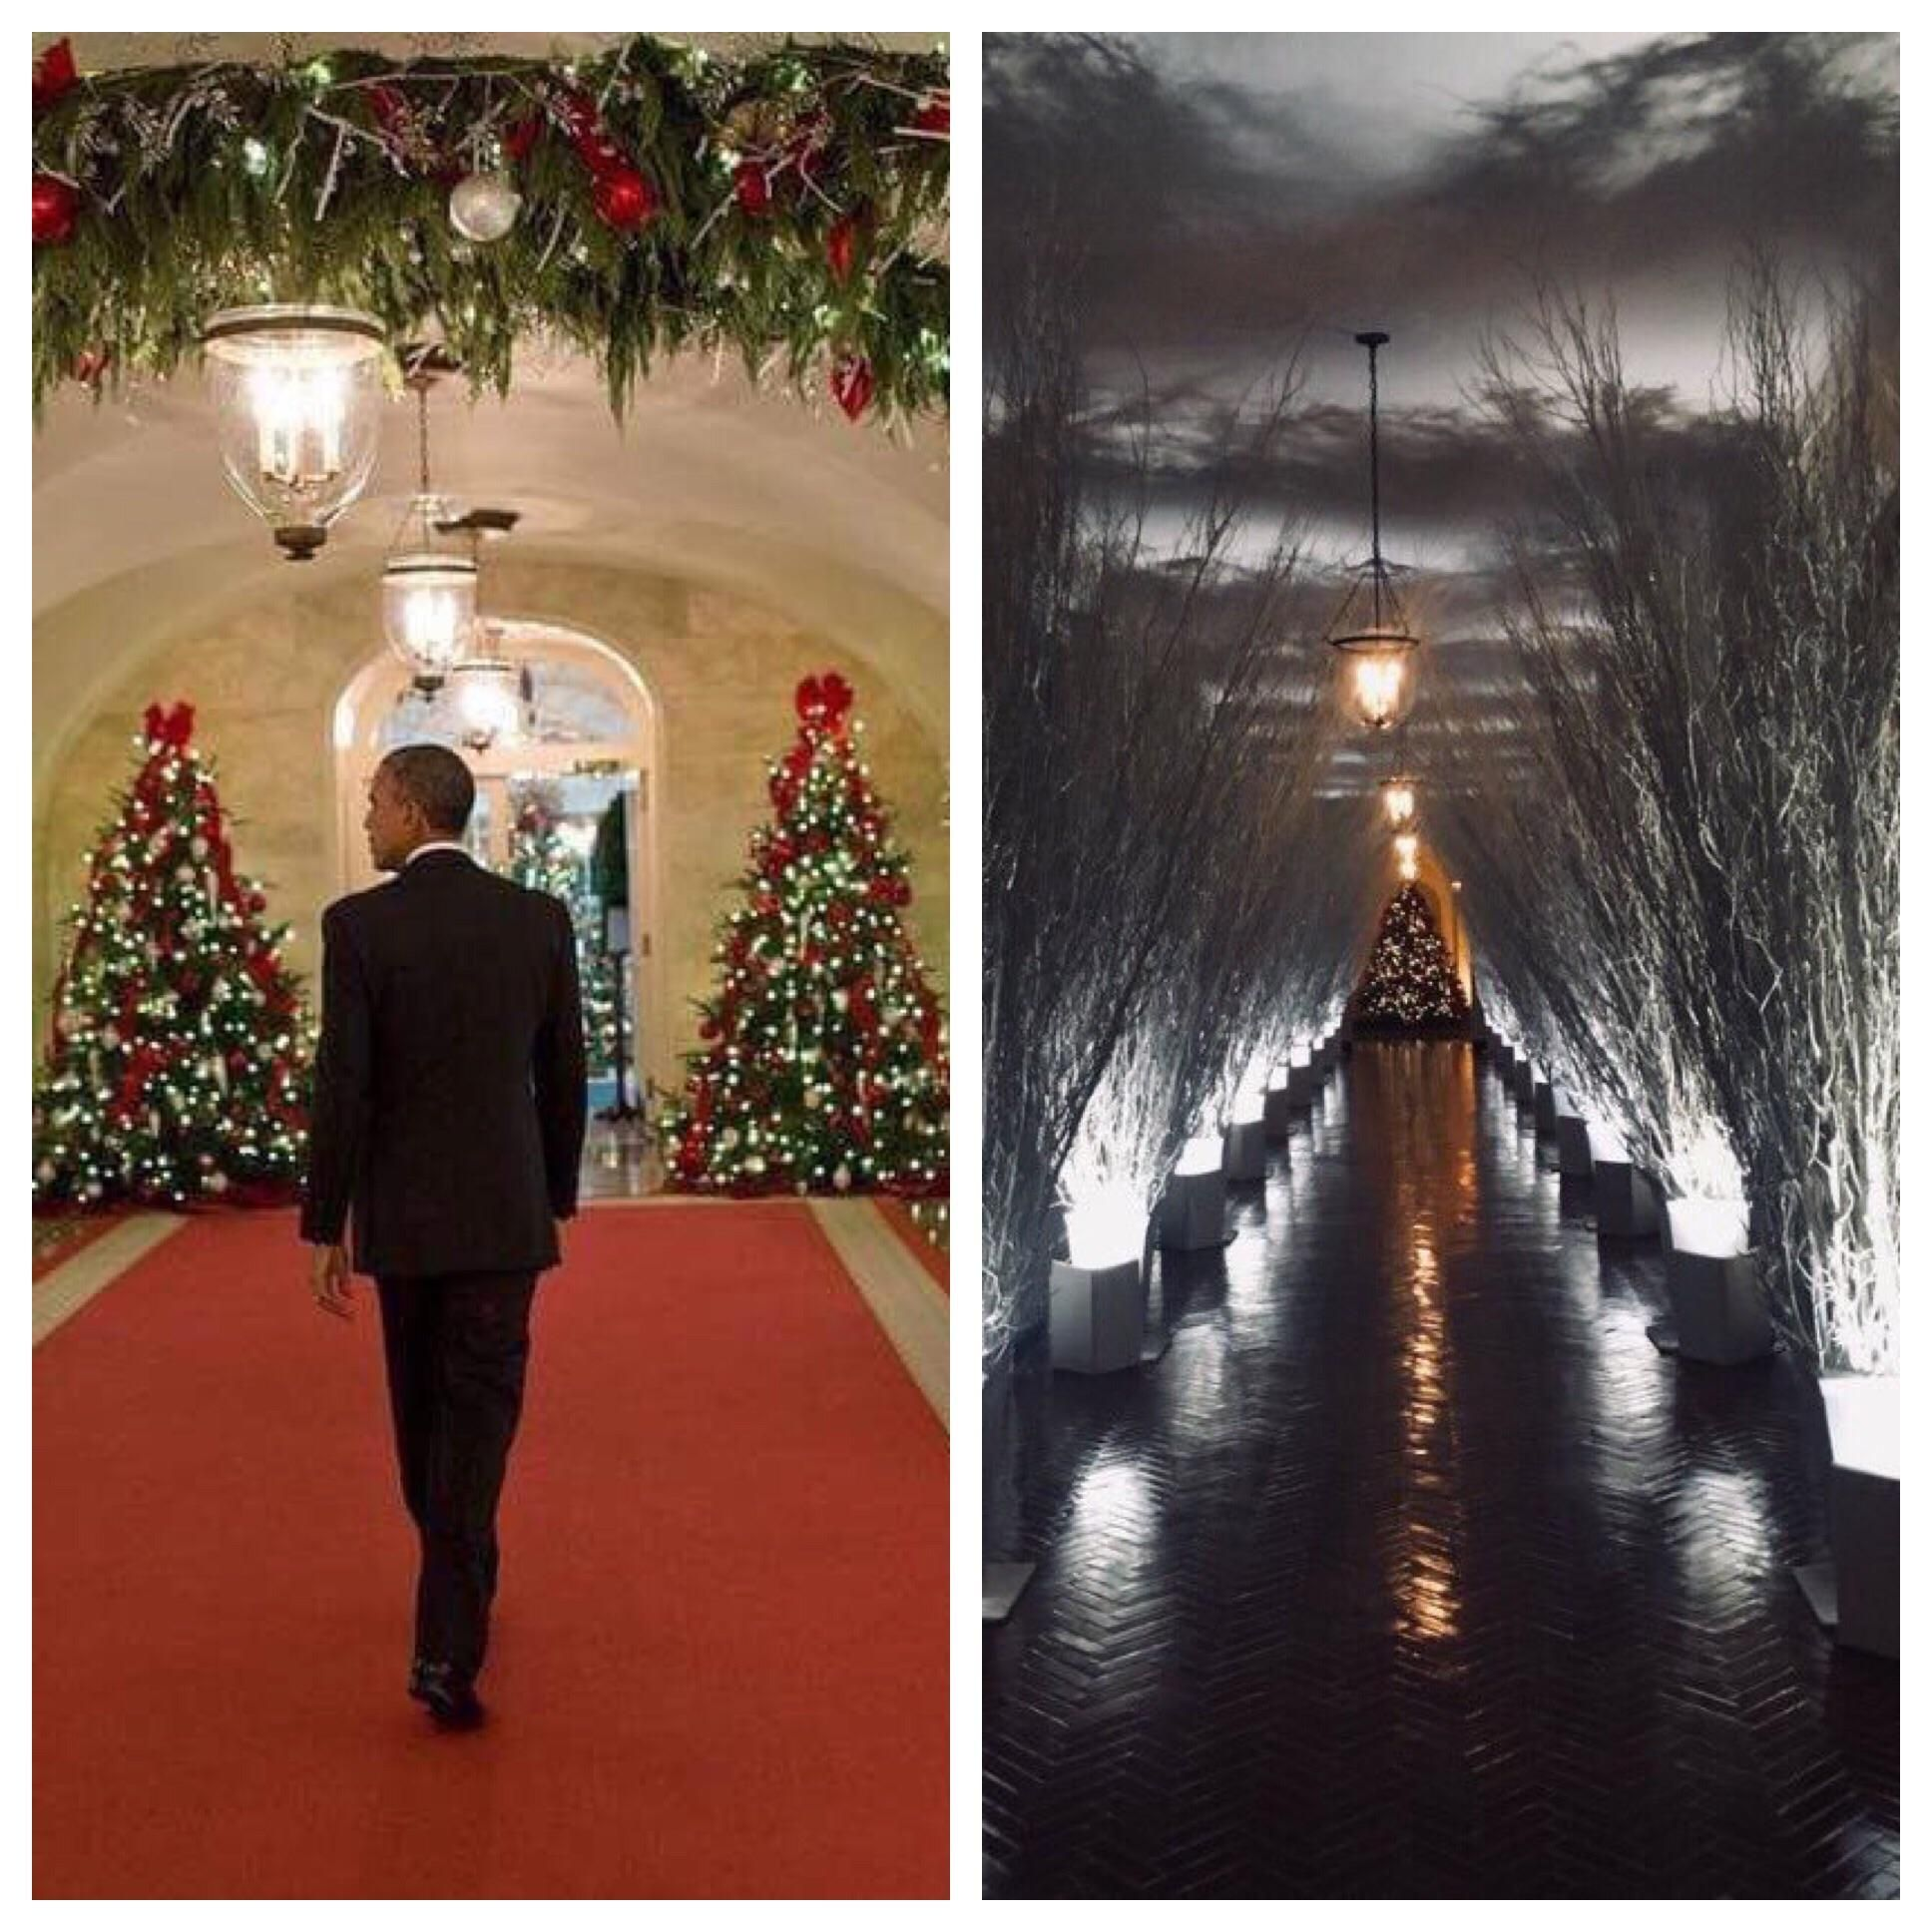 White House Christmas Theme 2019 Whitehouse Christmas decorations: Obama vs Trump | Holiday's in